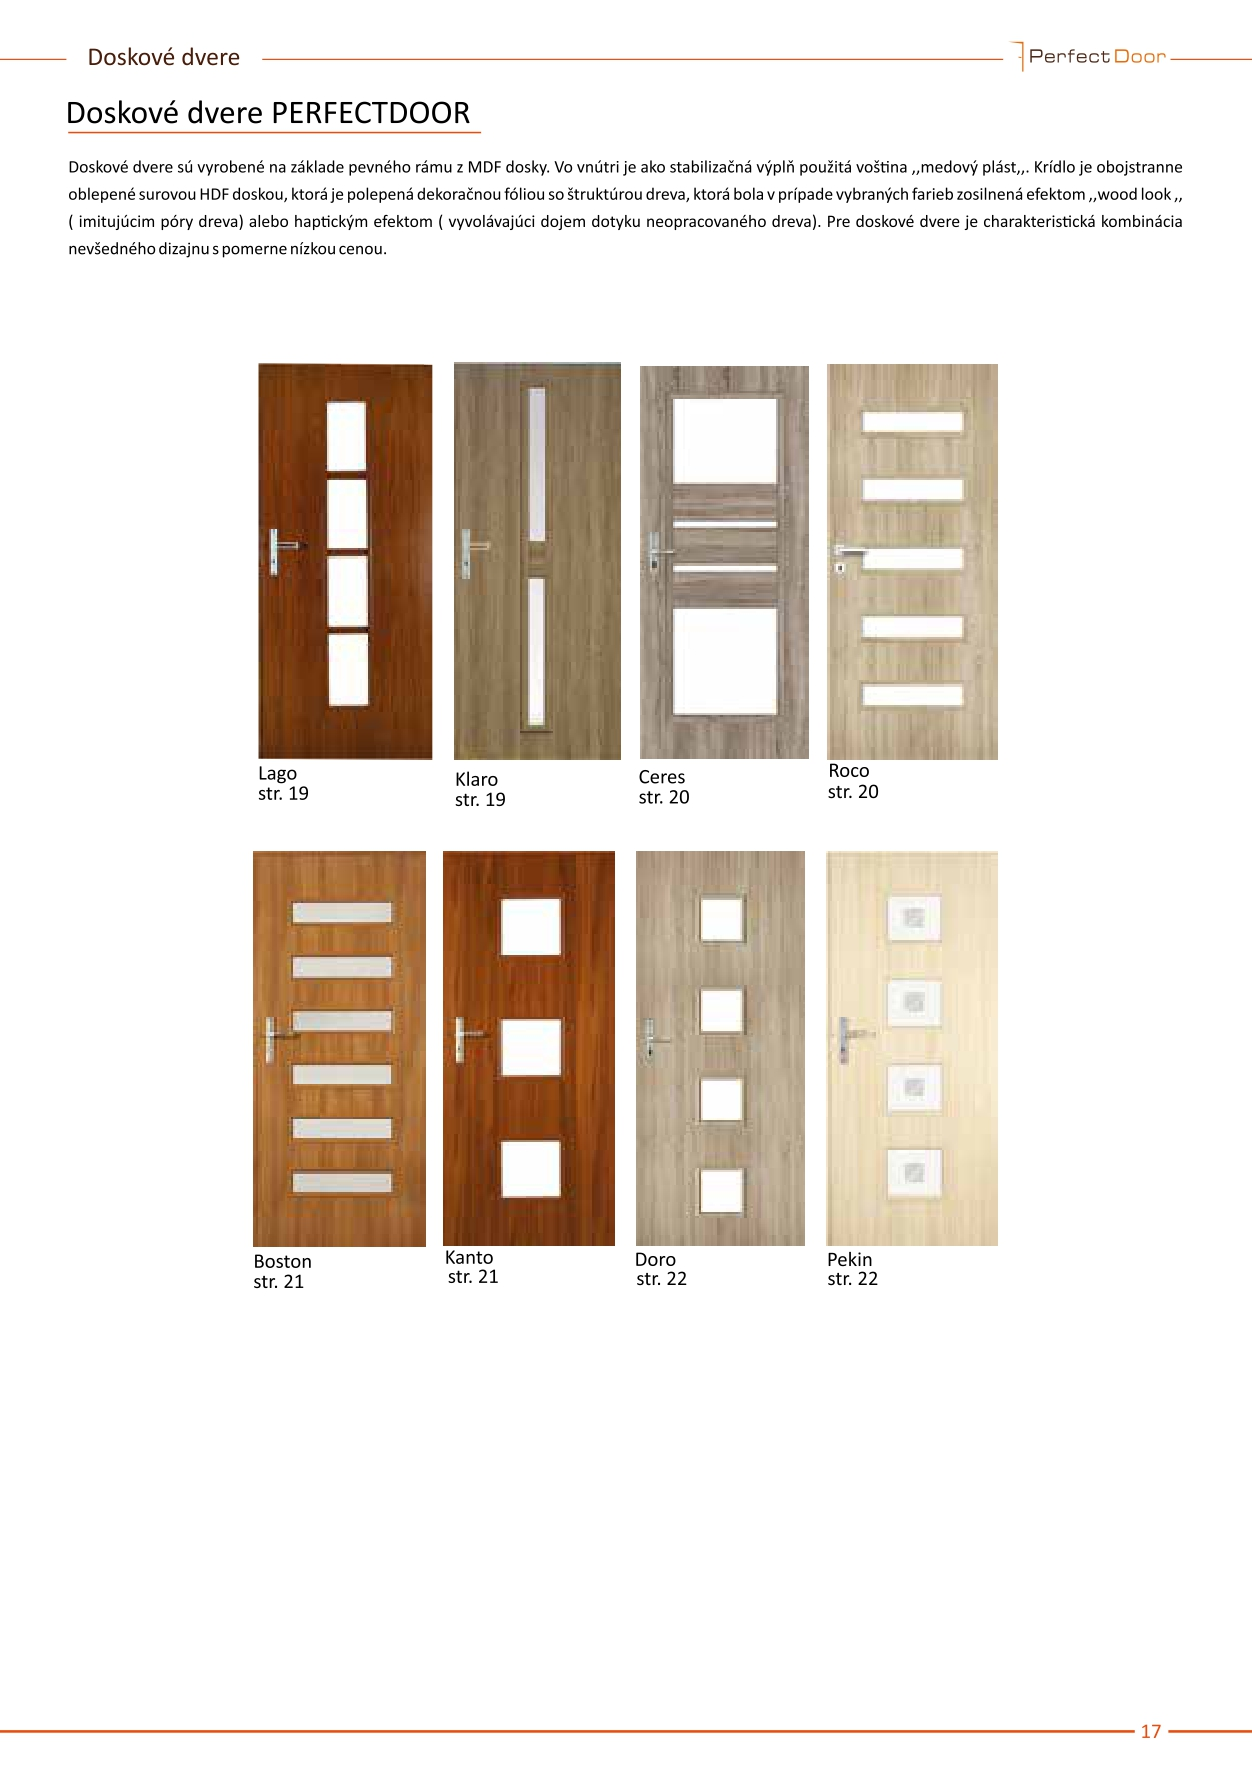 Perfectdoor katalog  1 2019 pages-to-jpg-0017